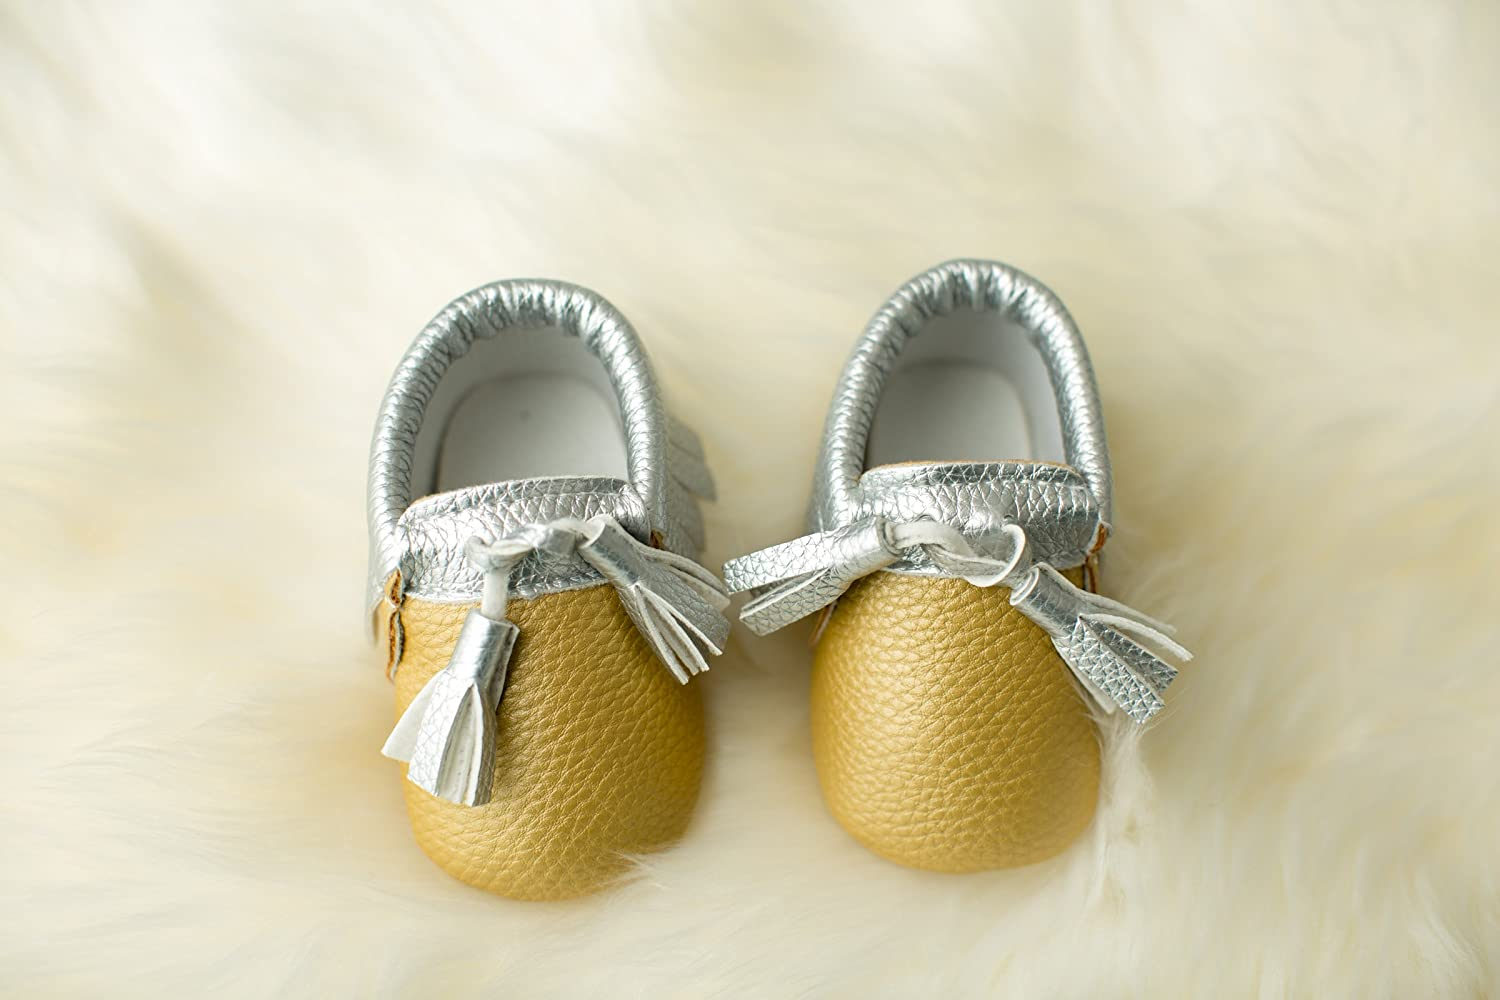 Made from Vegan Leather Material by Perfect Present for Baby Shower Lilac /& Lavender Tasseled Baby Moccasins with Soft Soles Lightweight Shoes for Baby and Toddler